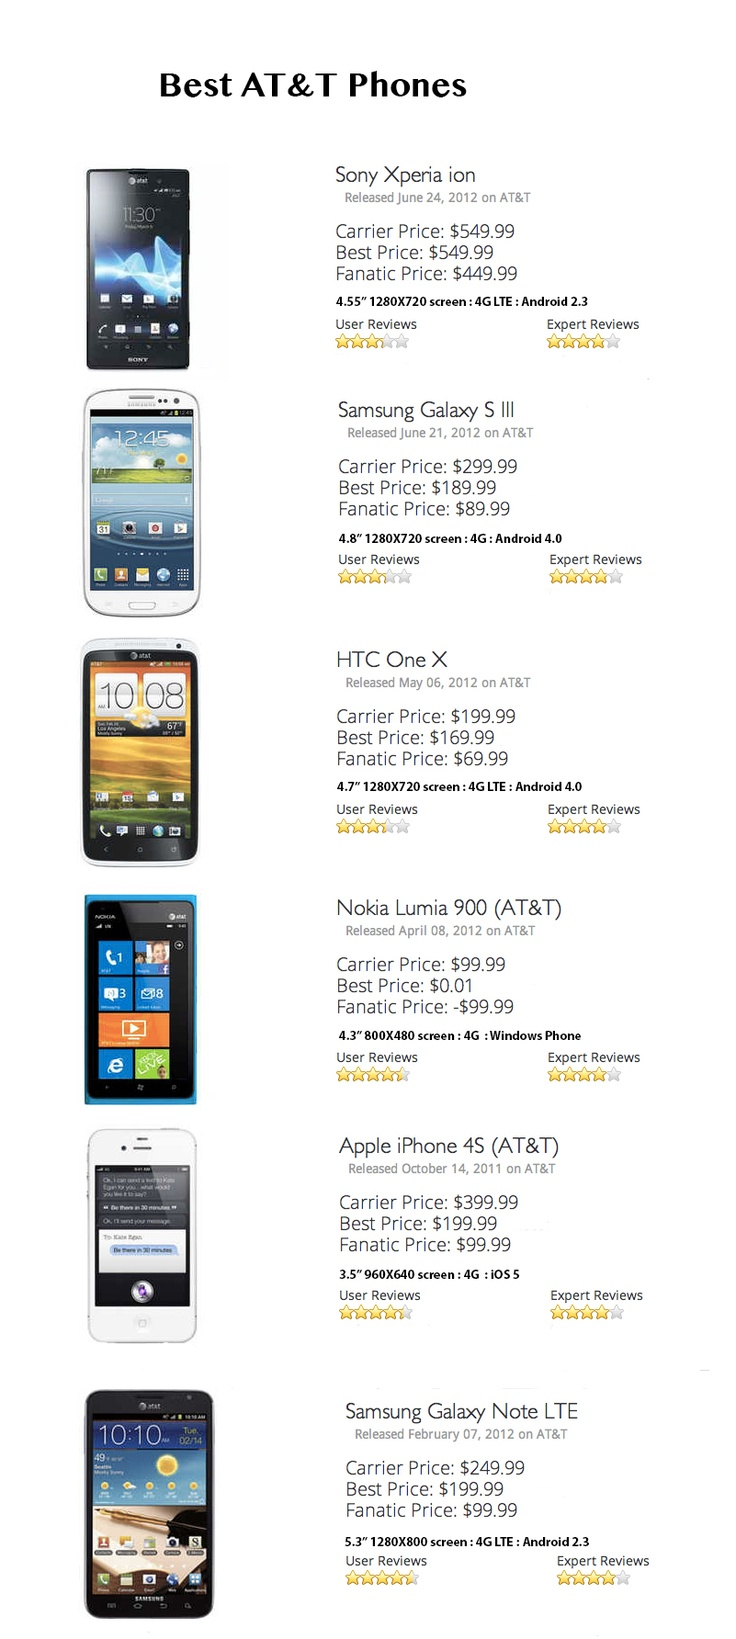 Check this out the best AT T phones according to the reviews, sourced from phonefanatic.